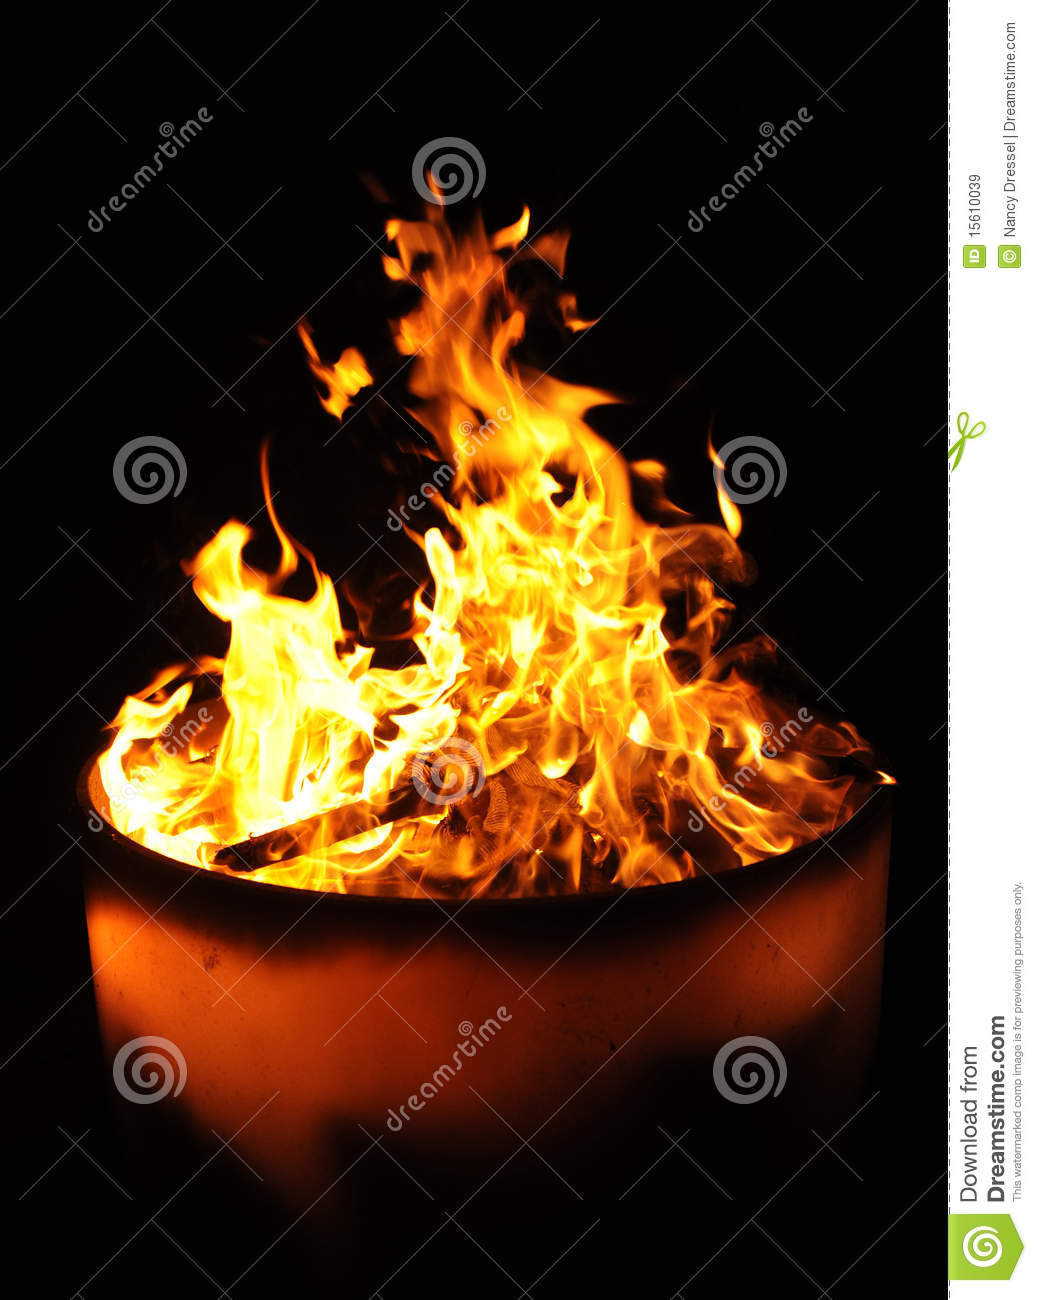 flames in a fire pot royalty free stock images image flames clipart black and white flames clip art dxf files